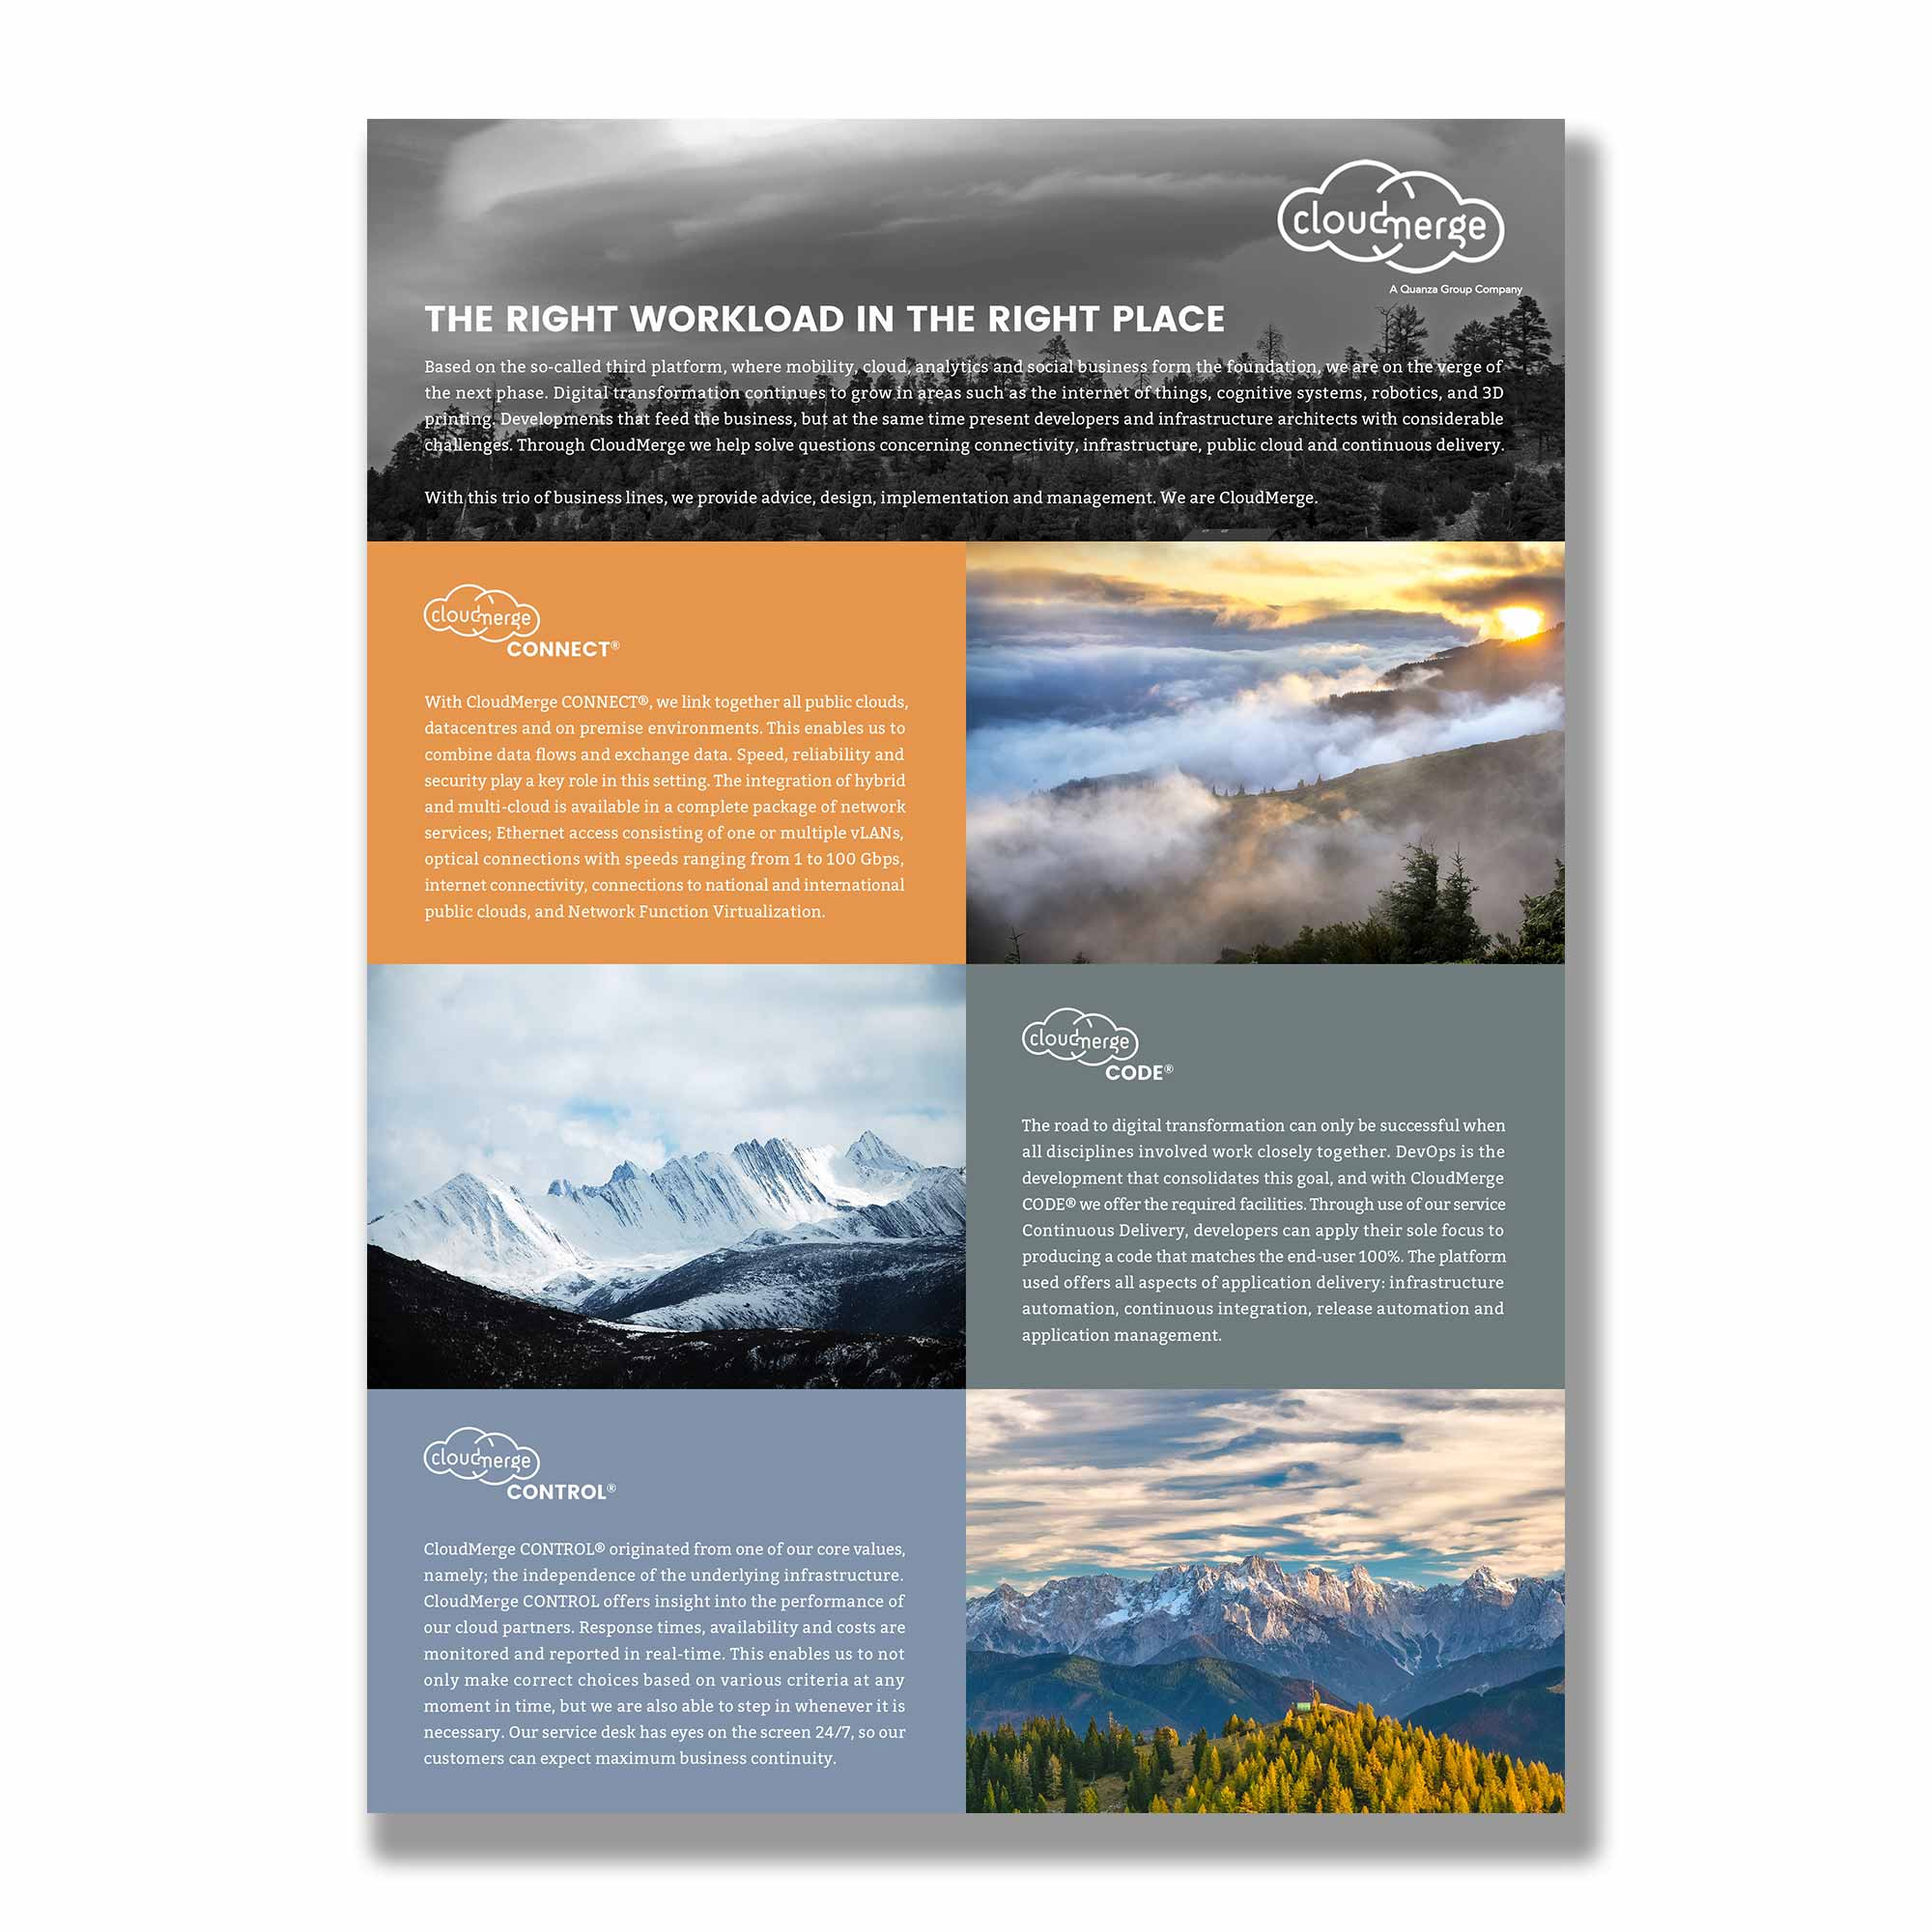 CloudMerge_Marcom_Lines-of-Business_Front